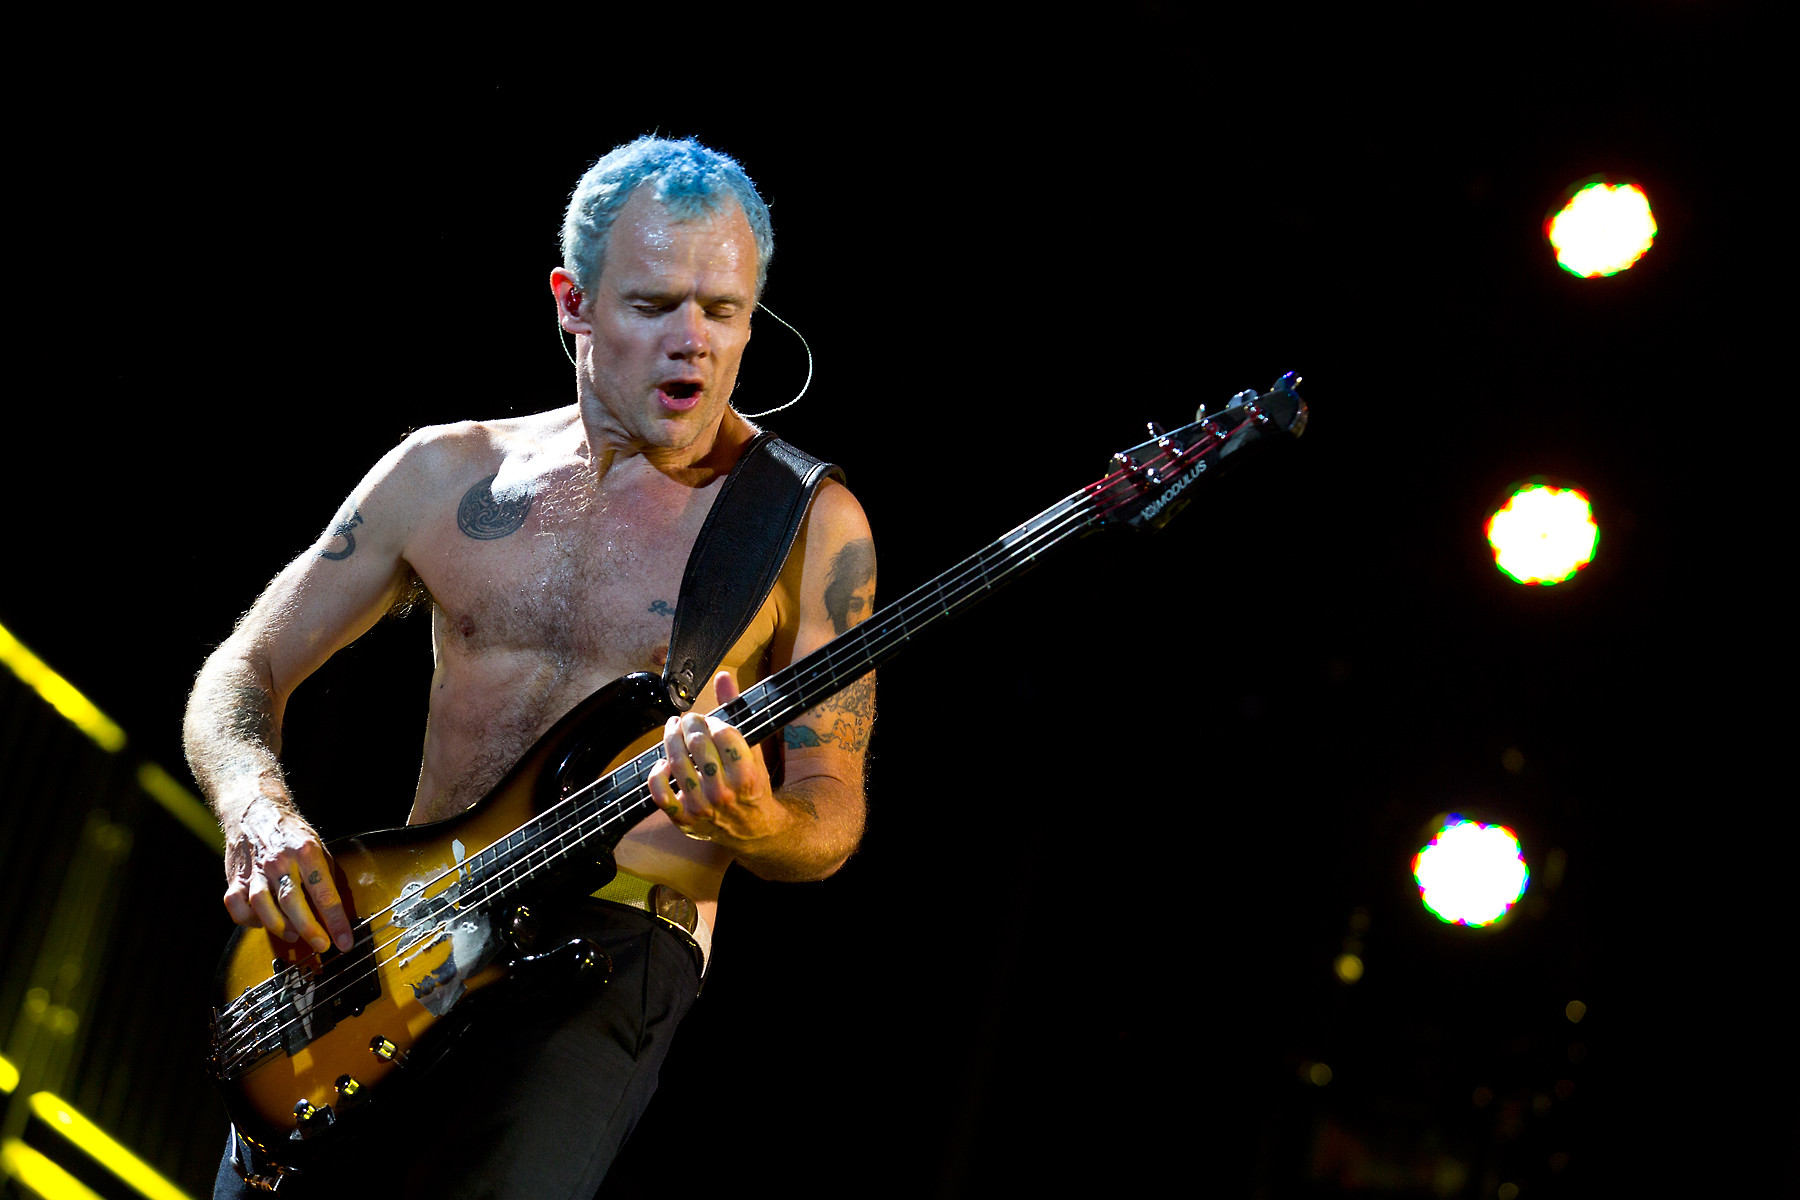 Red Hot Chili Peppers @ Lollapalooza 2012